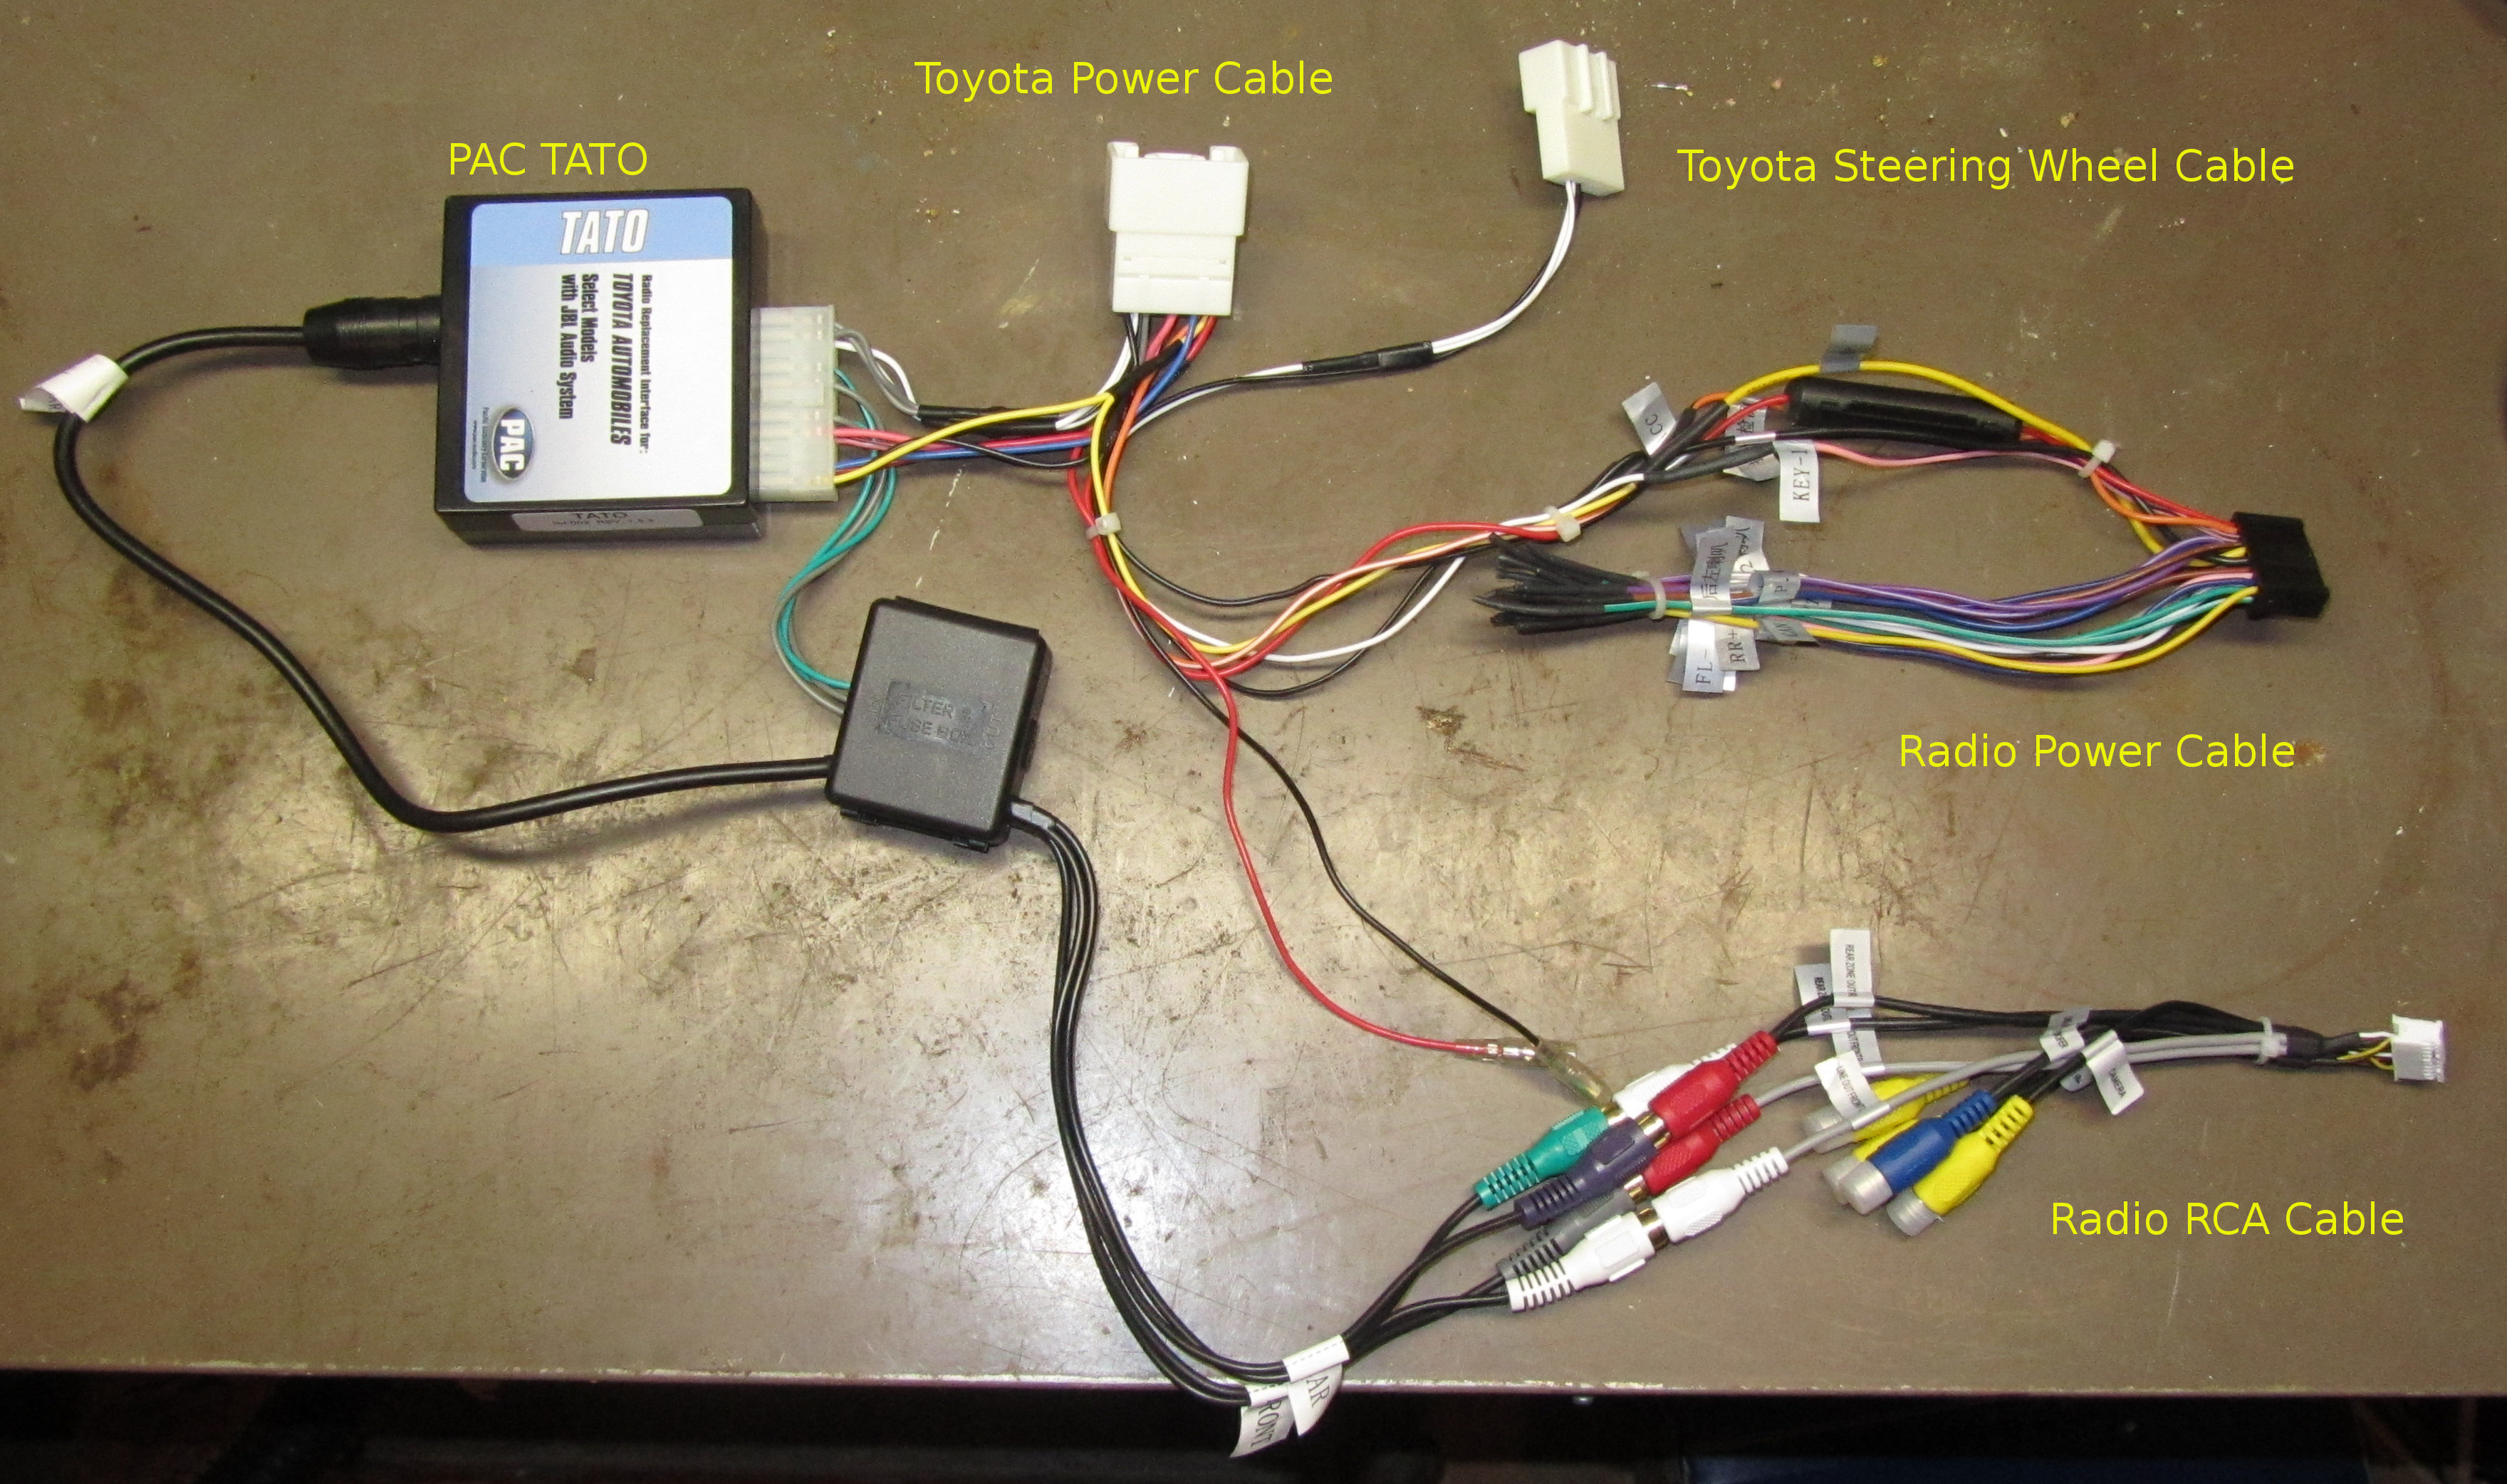 rav4 harness jbl jbl wiring harness at highcare.asia